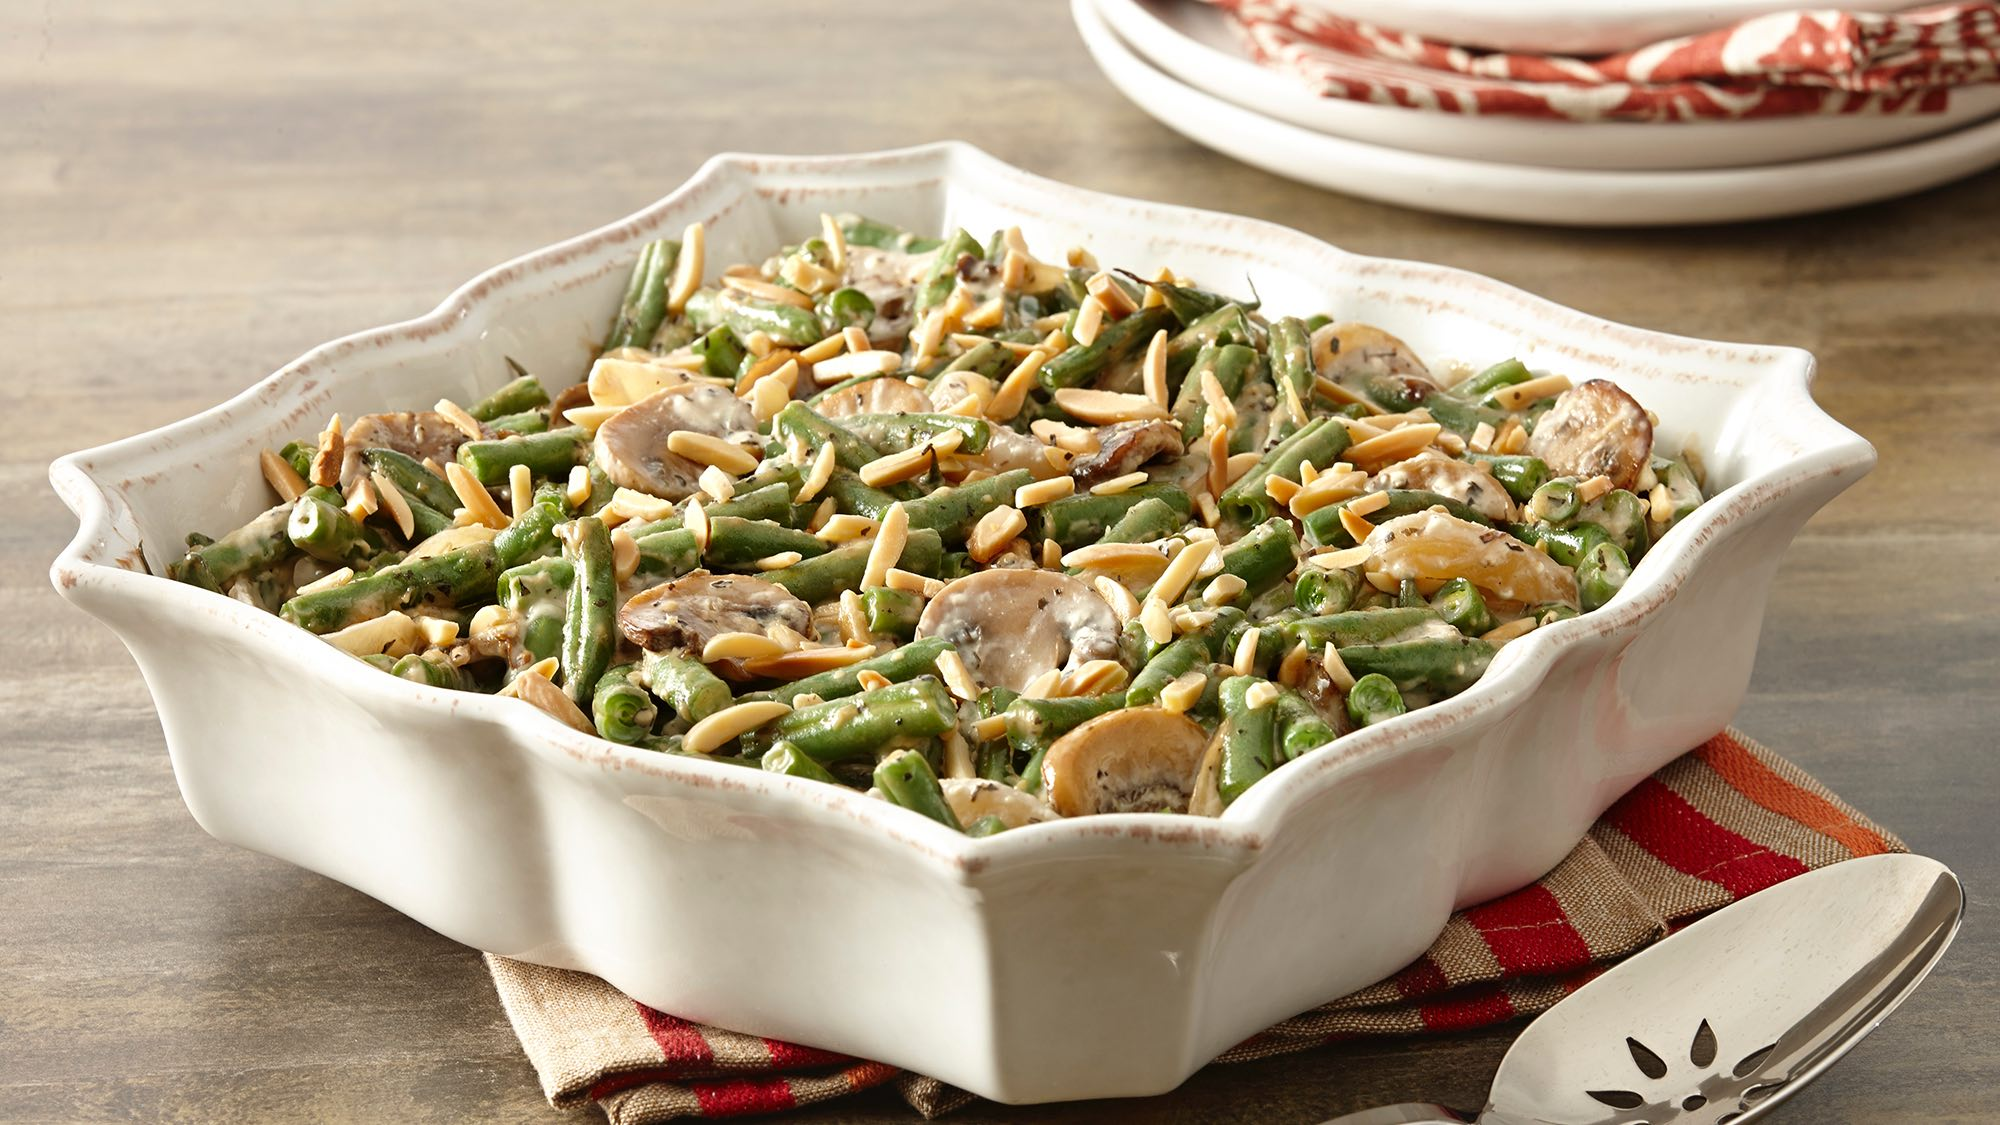 McCormick Gluten-Free Green Bean Casserole with Caramelized Mushrooms and Onions